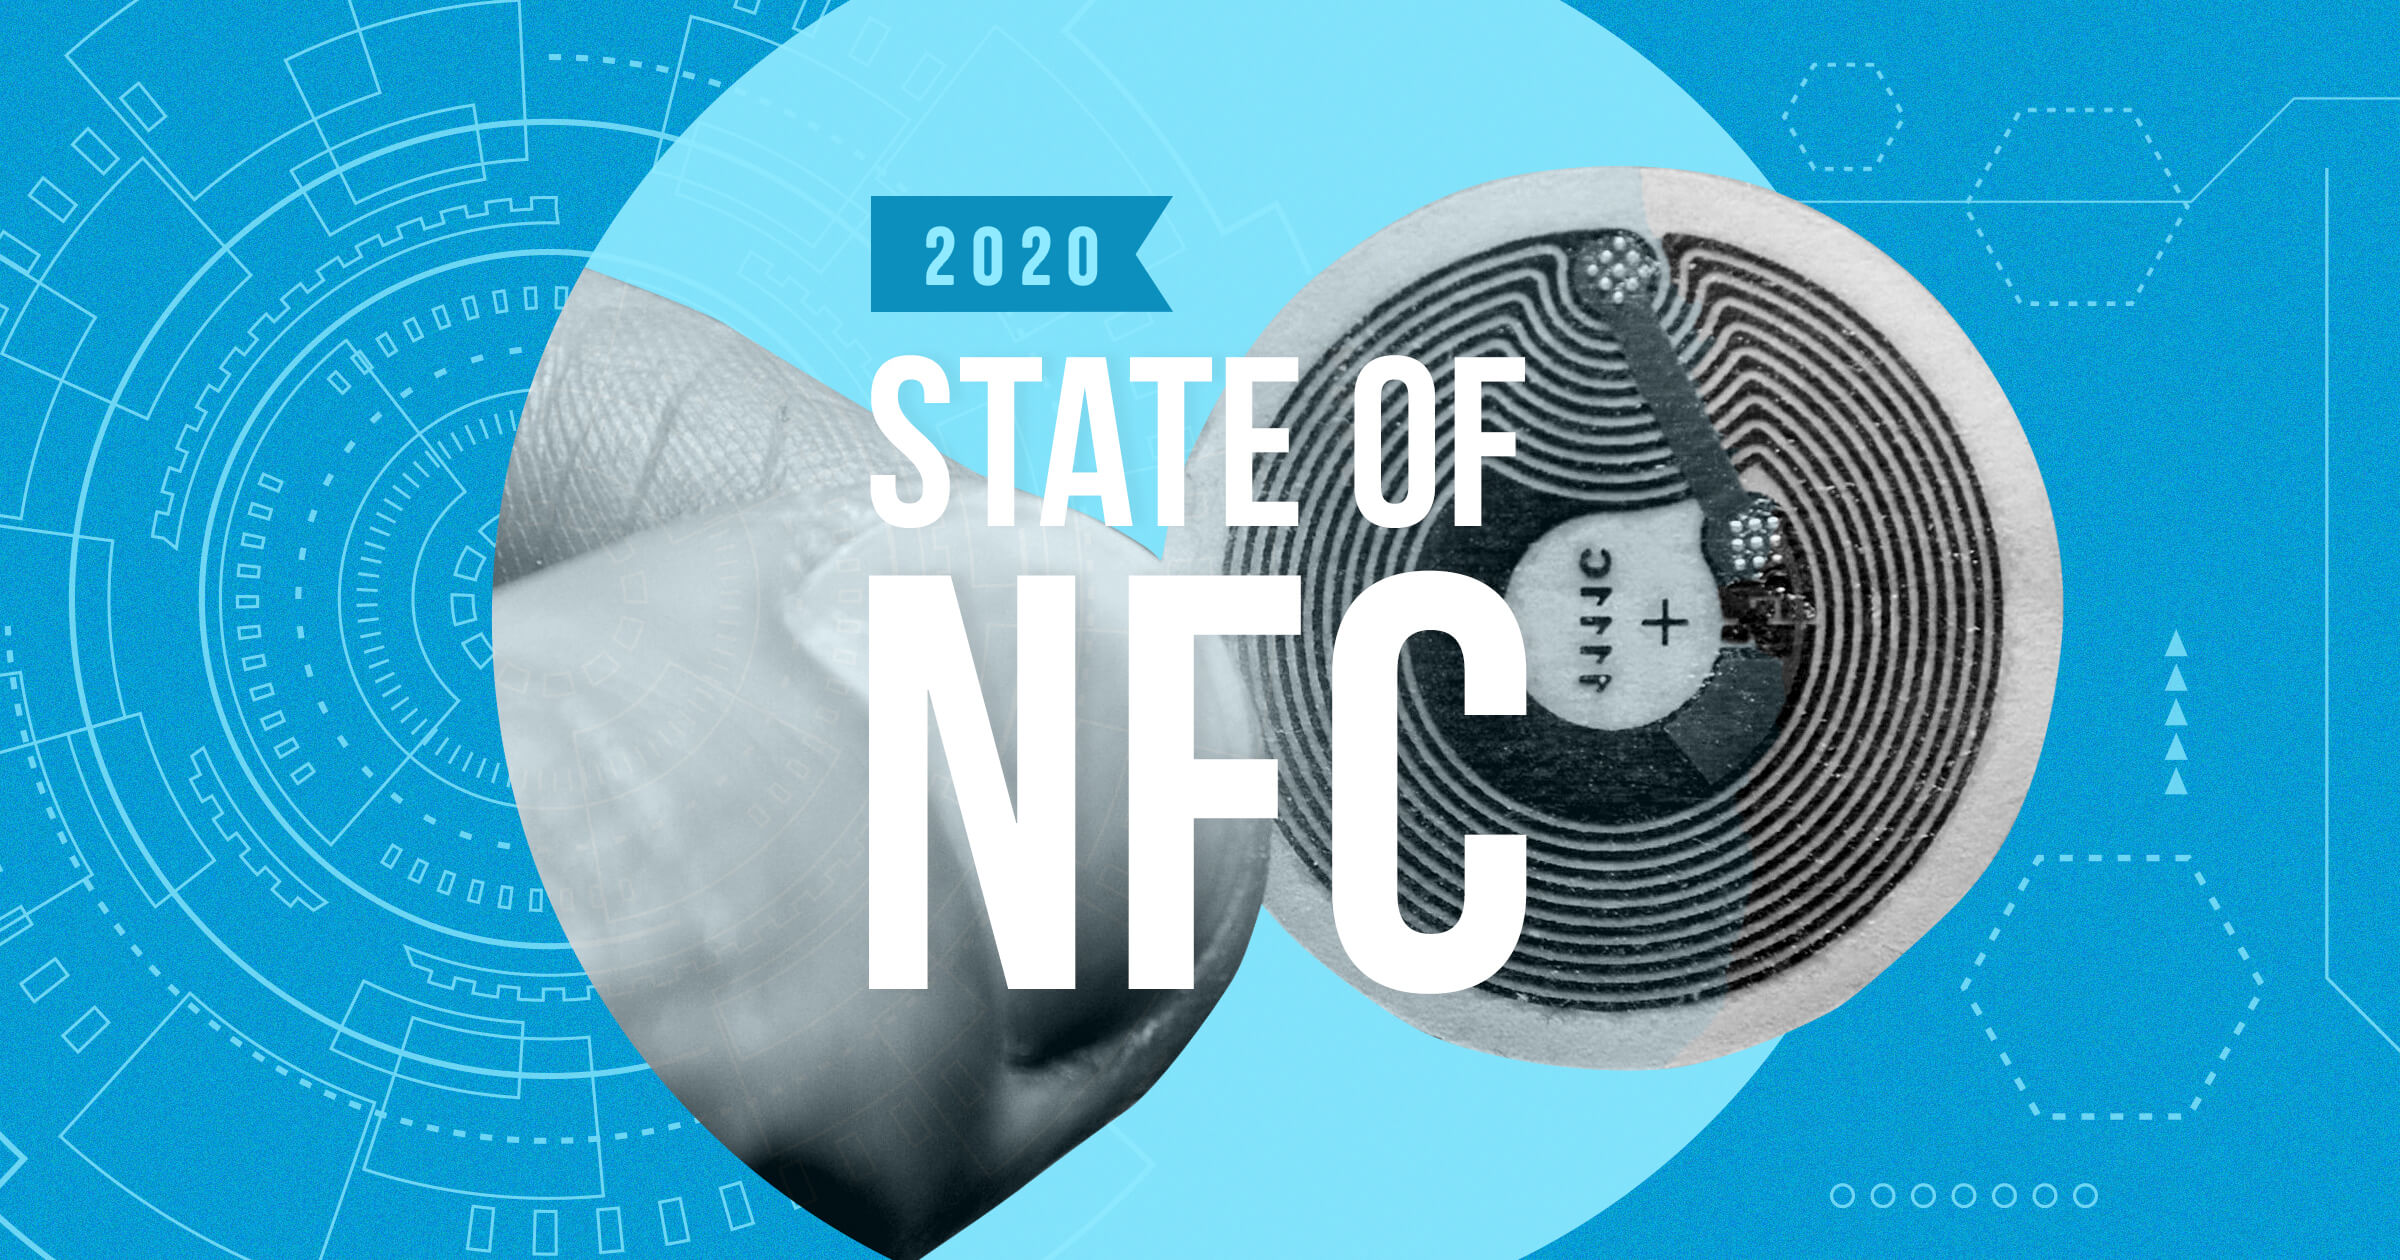 The State of NFC in 2020